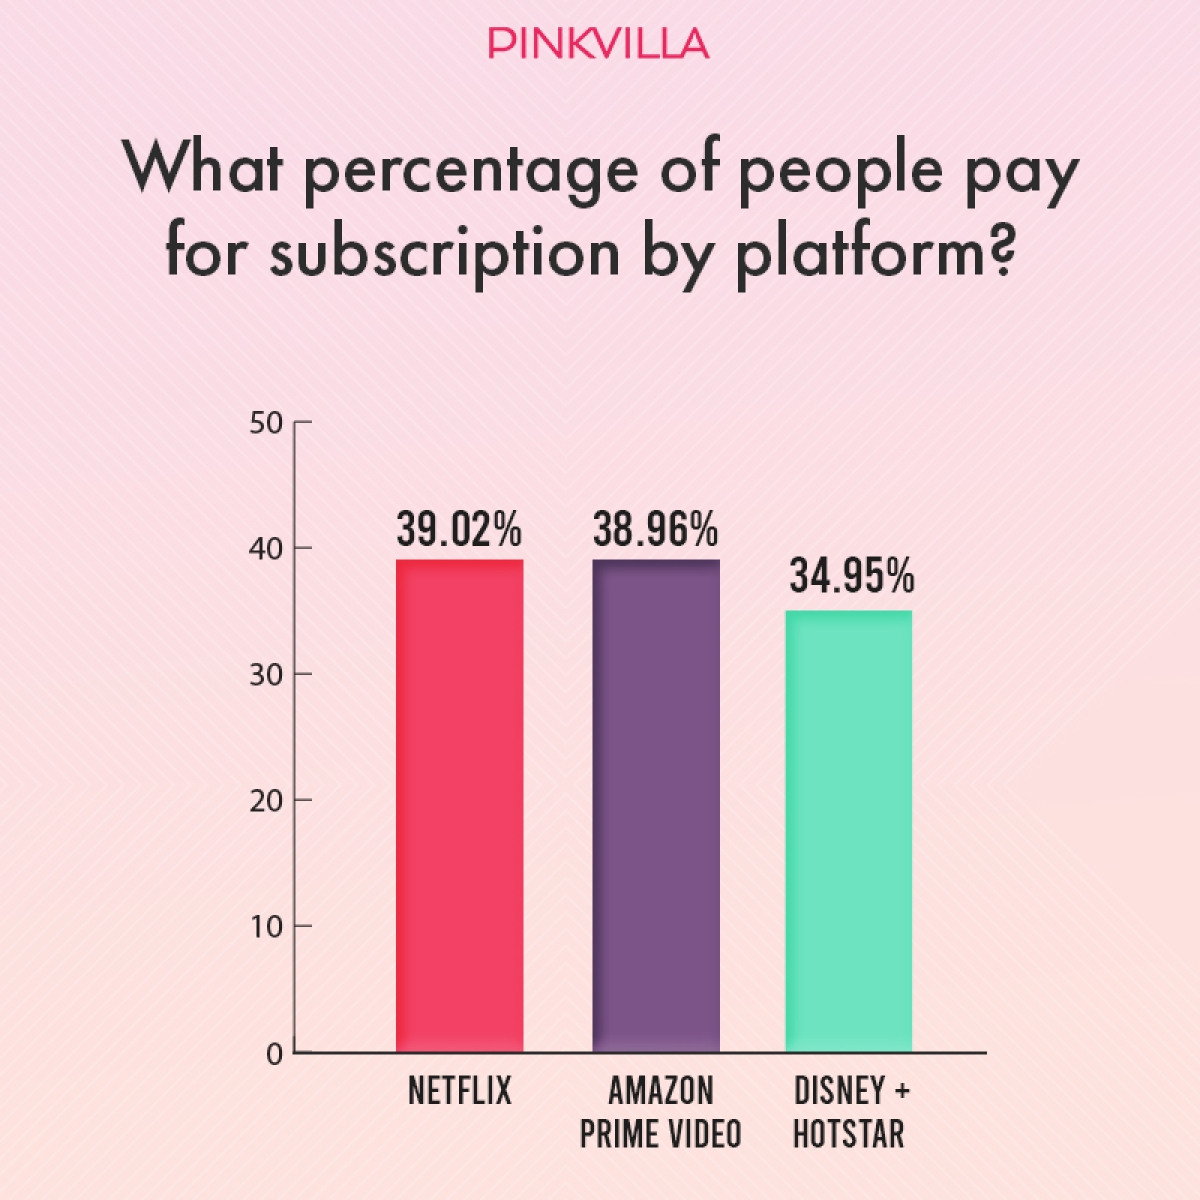 Over 60% of Indian streamers do not pay for streaming OTT Content